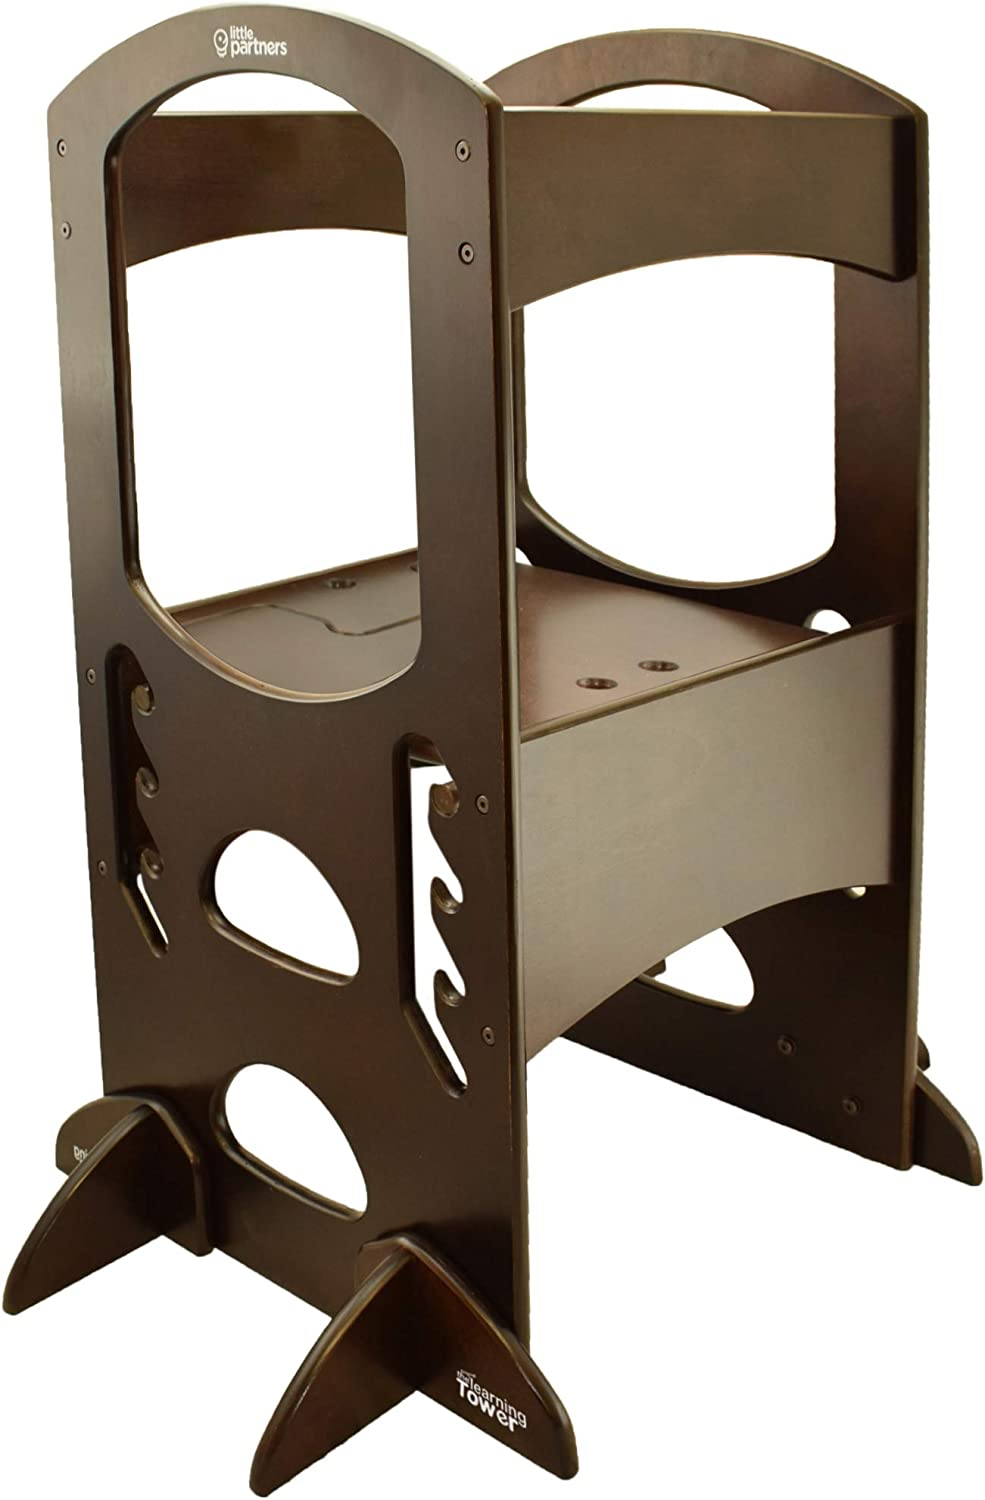 Espresso Kitchen Step Stool for Kids Marabell Toddler/'s Learning Tower